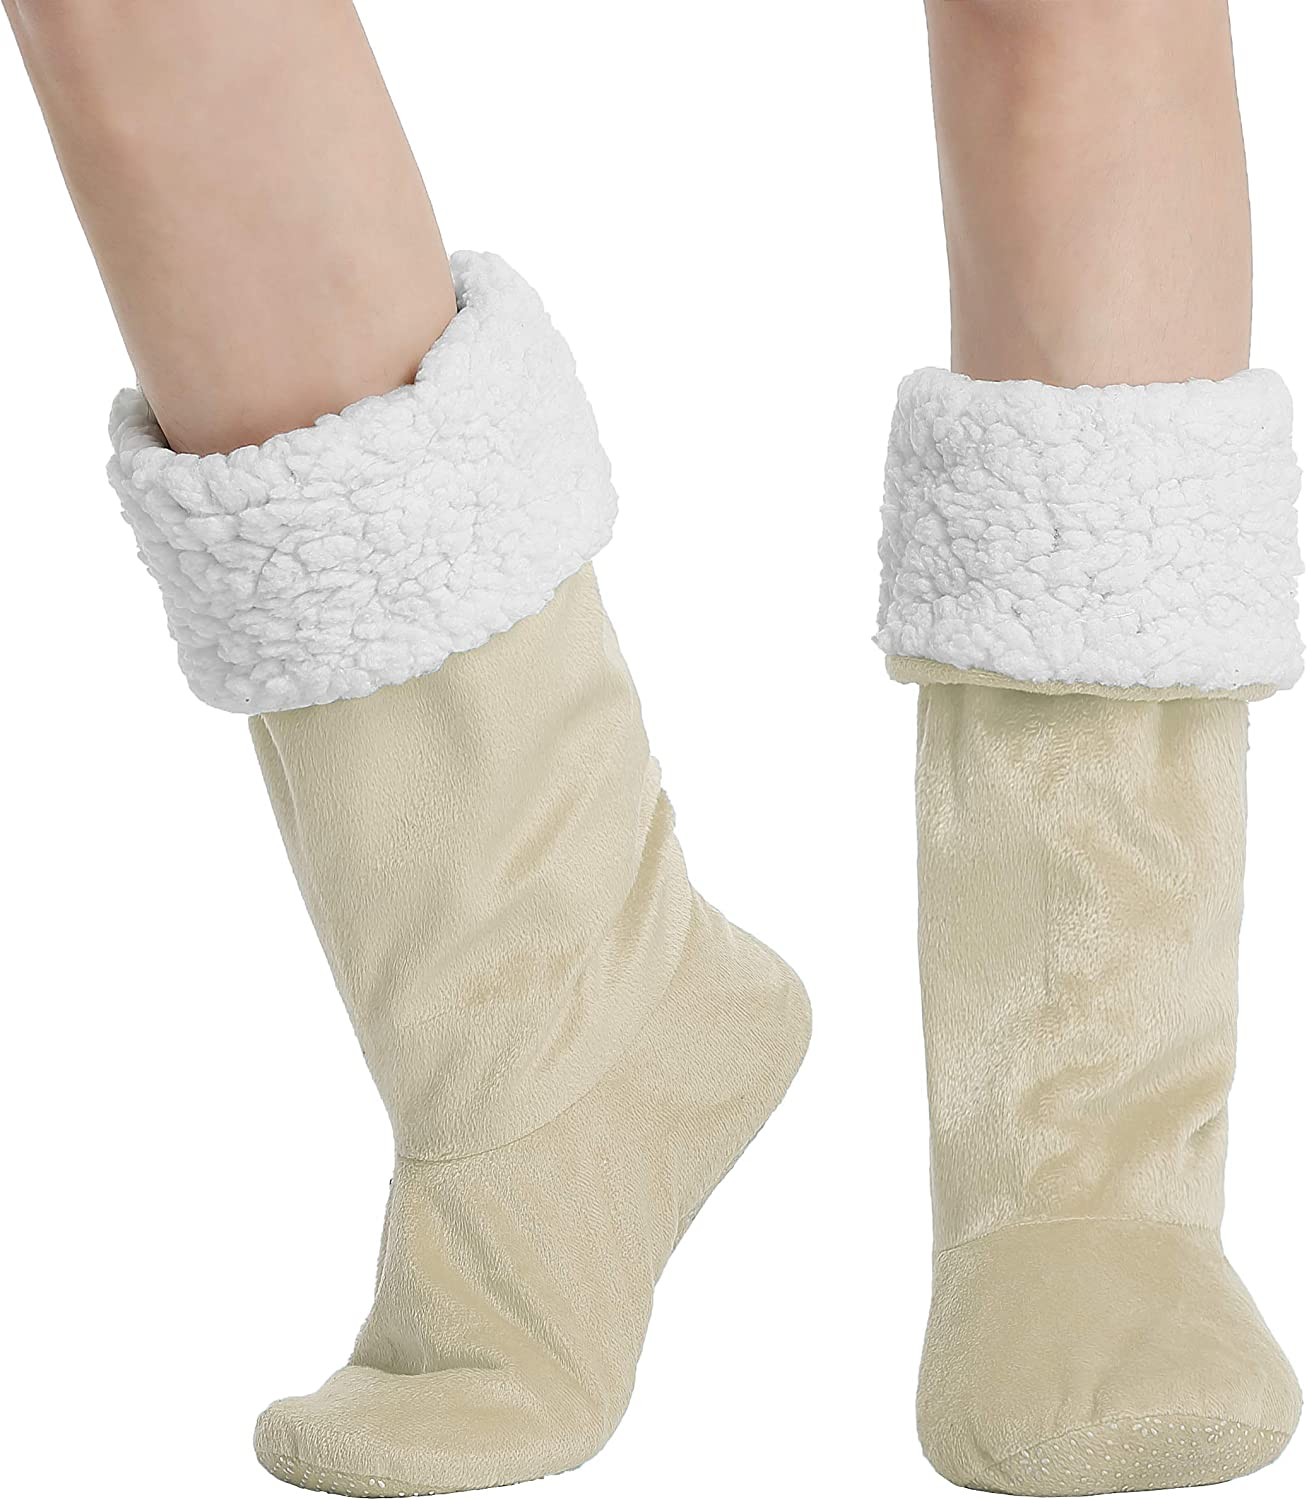 Cozy Non-Skid Sherpa Slipper Socks, Super Soft Warm Fuzzy Lined Booties Slippers, 2 Sizes, Multiple Colors